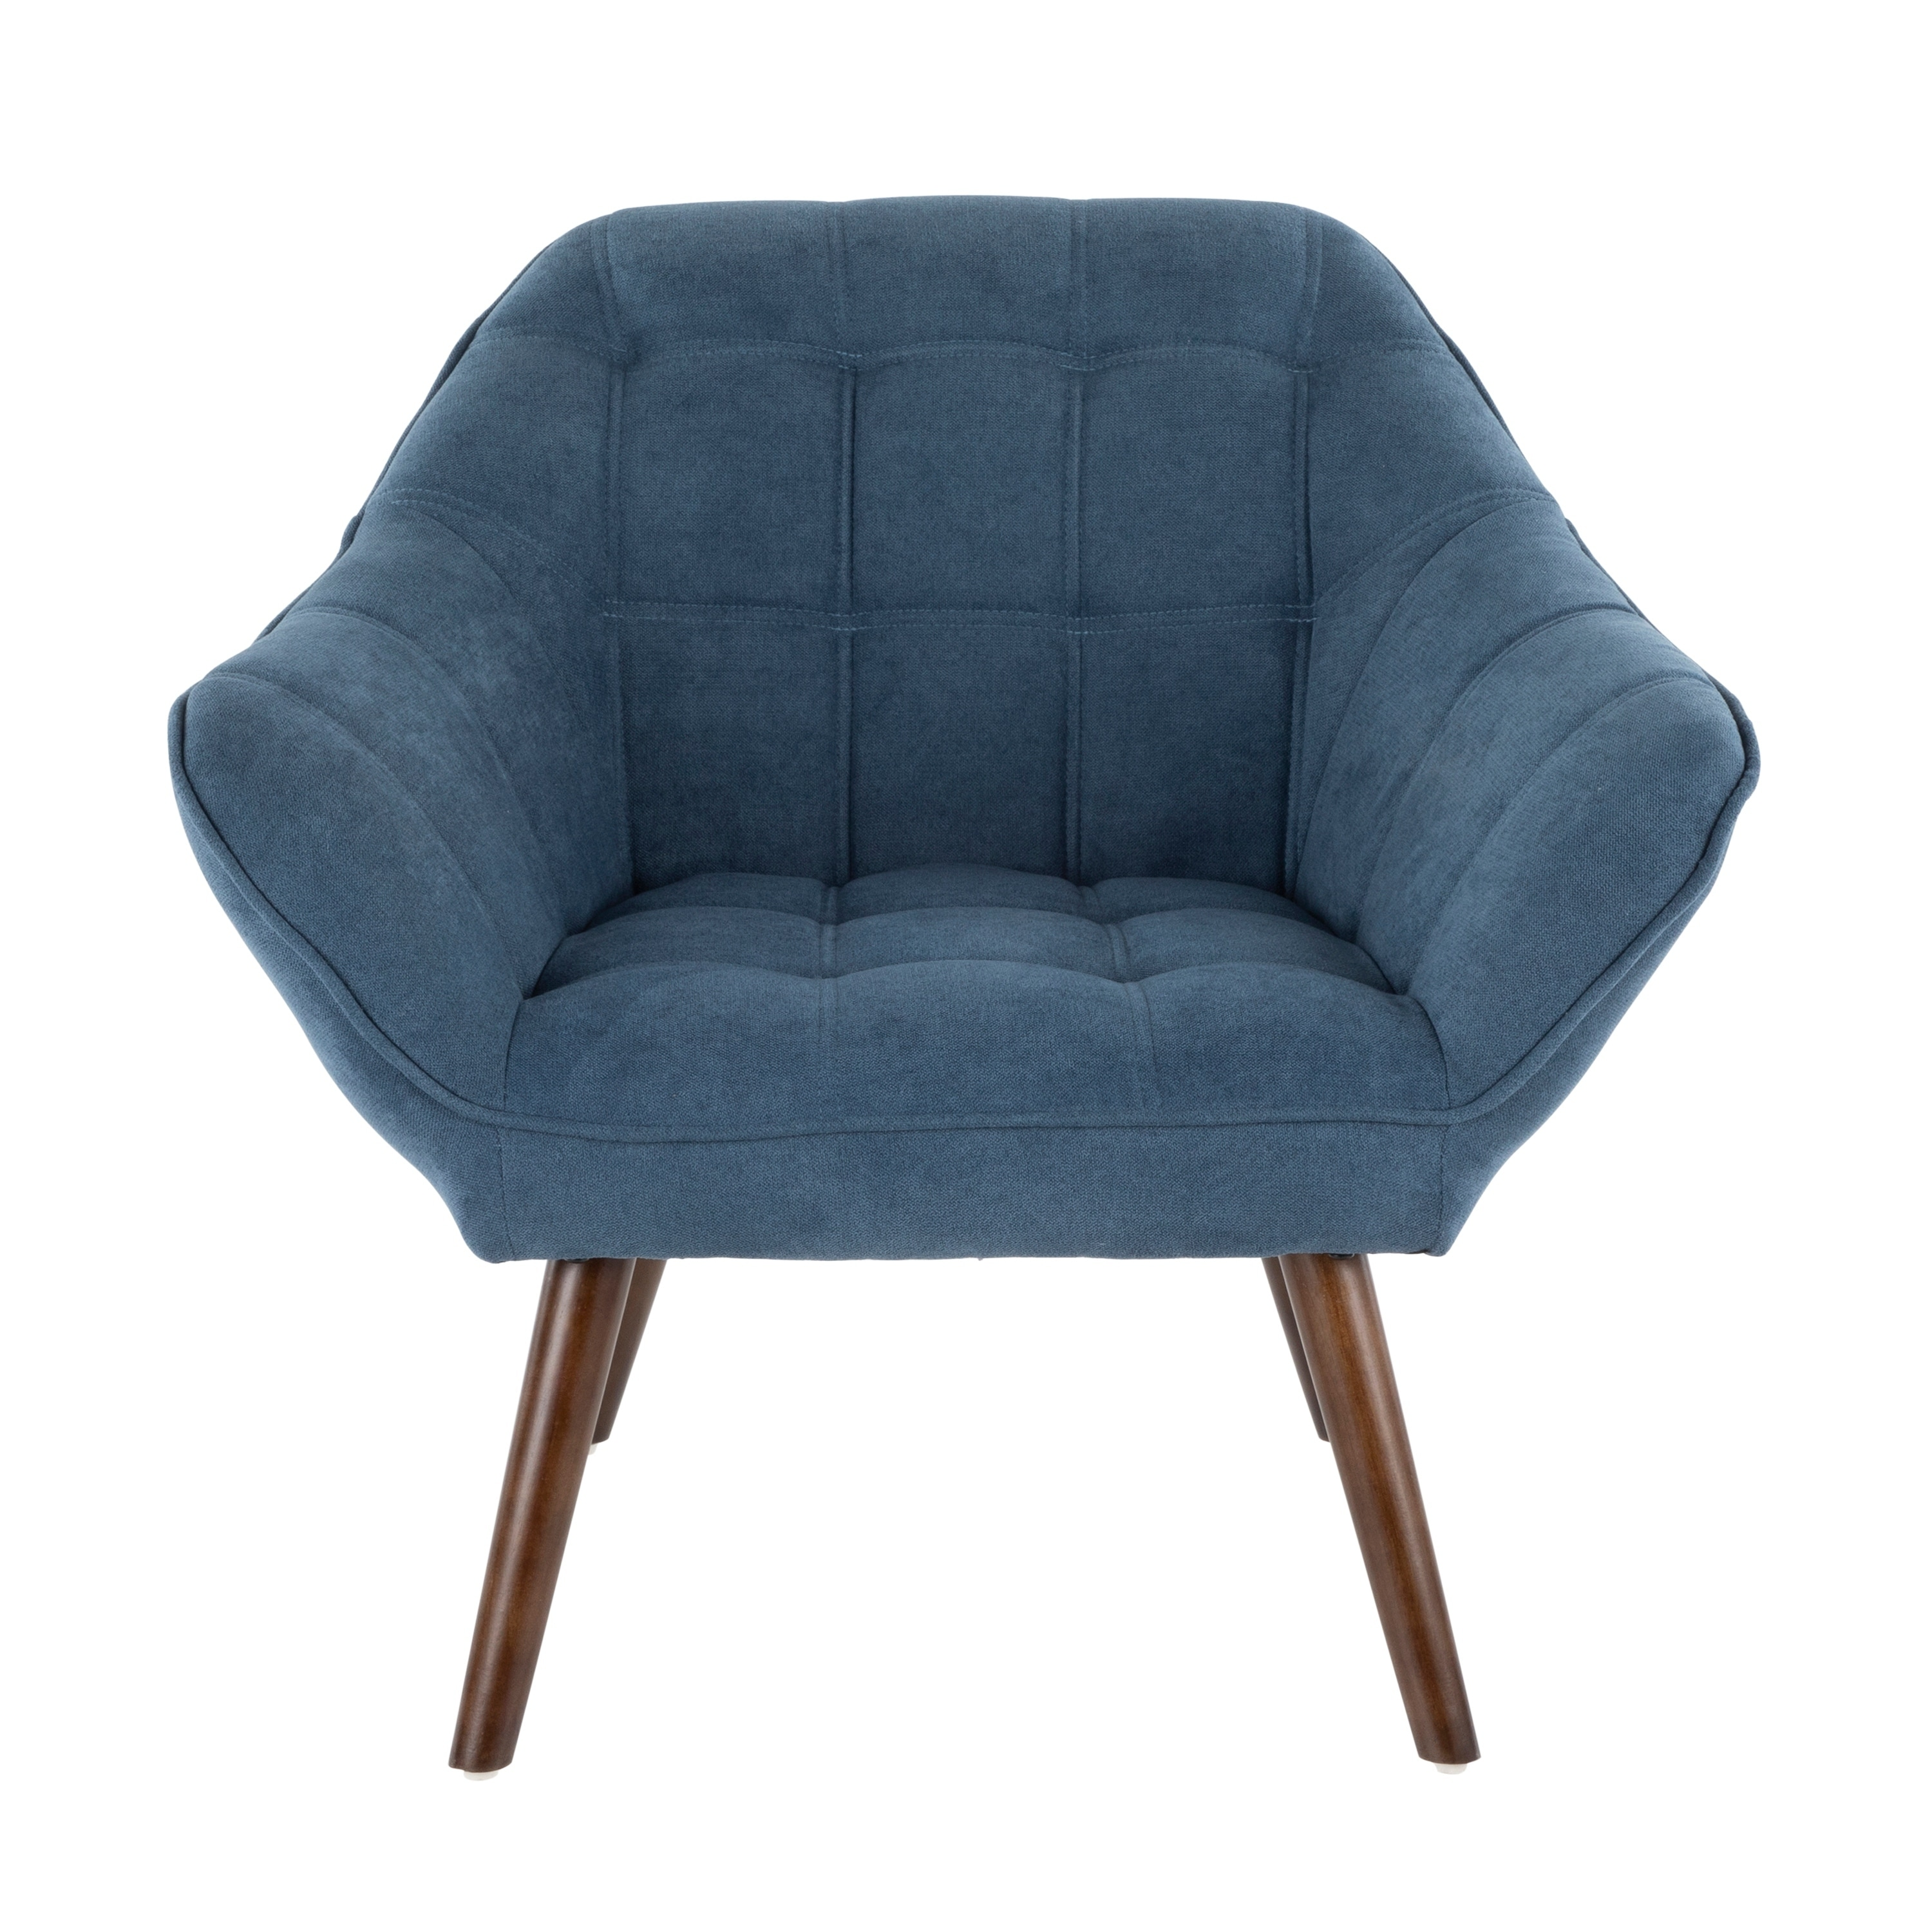 Blue Modern Accent Chairs.Boulder Mid Century Modern Upholstered Accent Chair